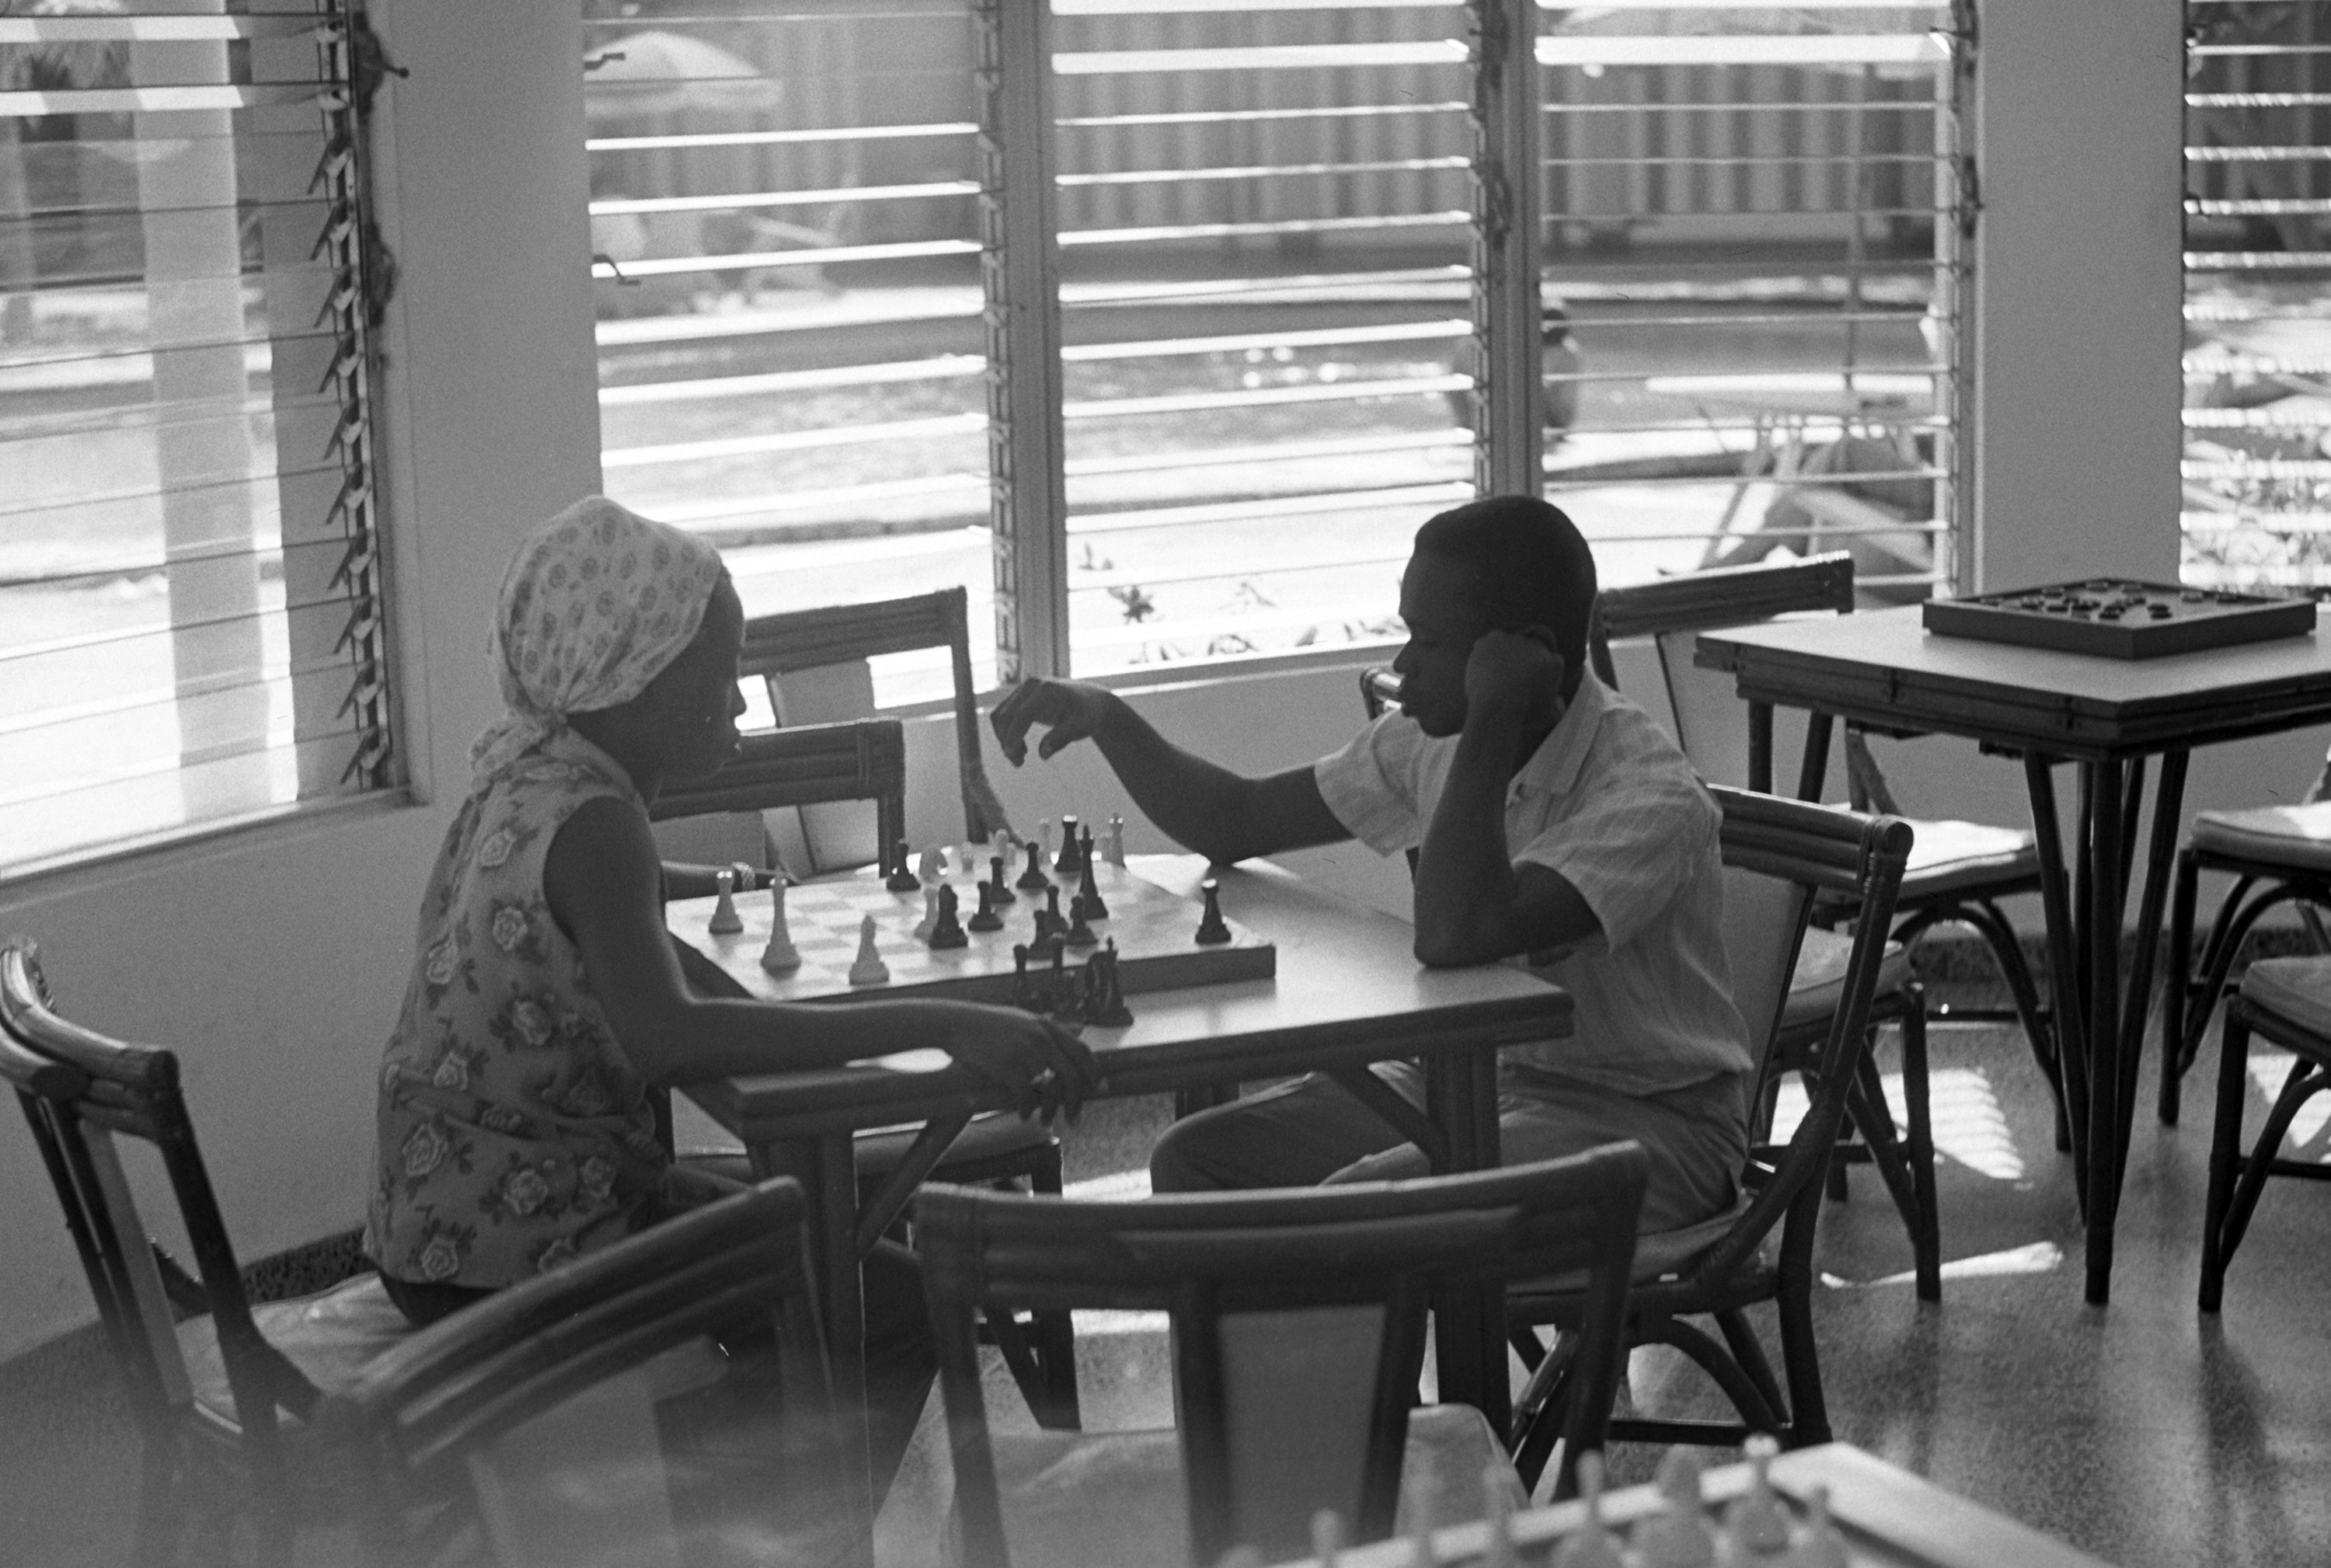 A man and woman play chess in a hotel lobby